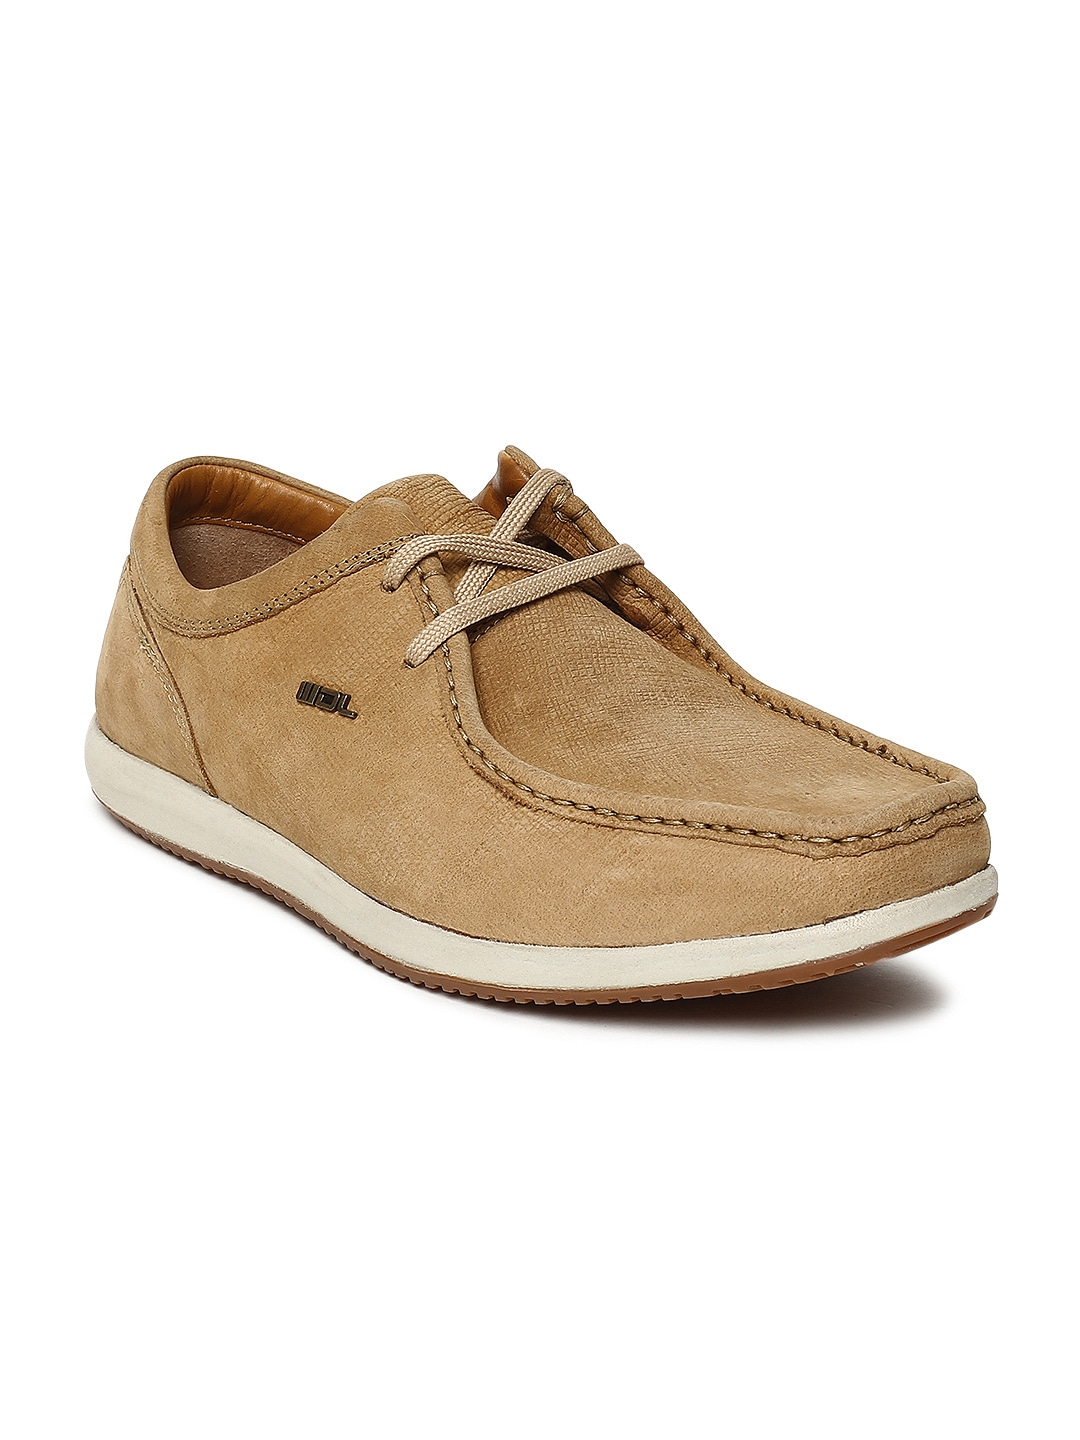 Camel Brown Nubuck Derbys